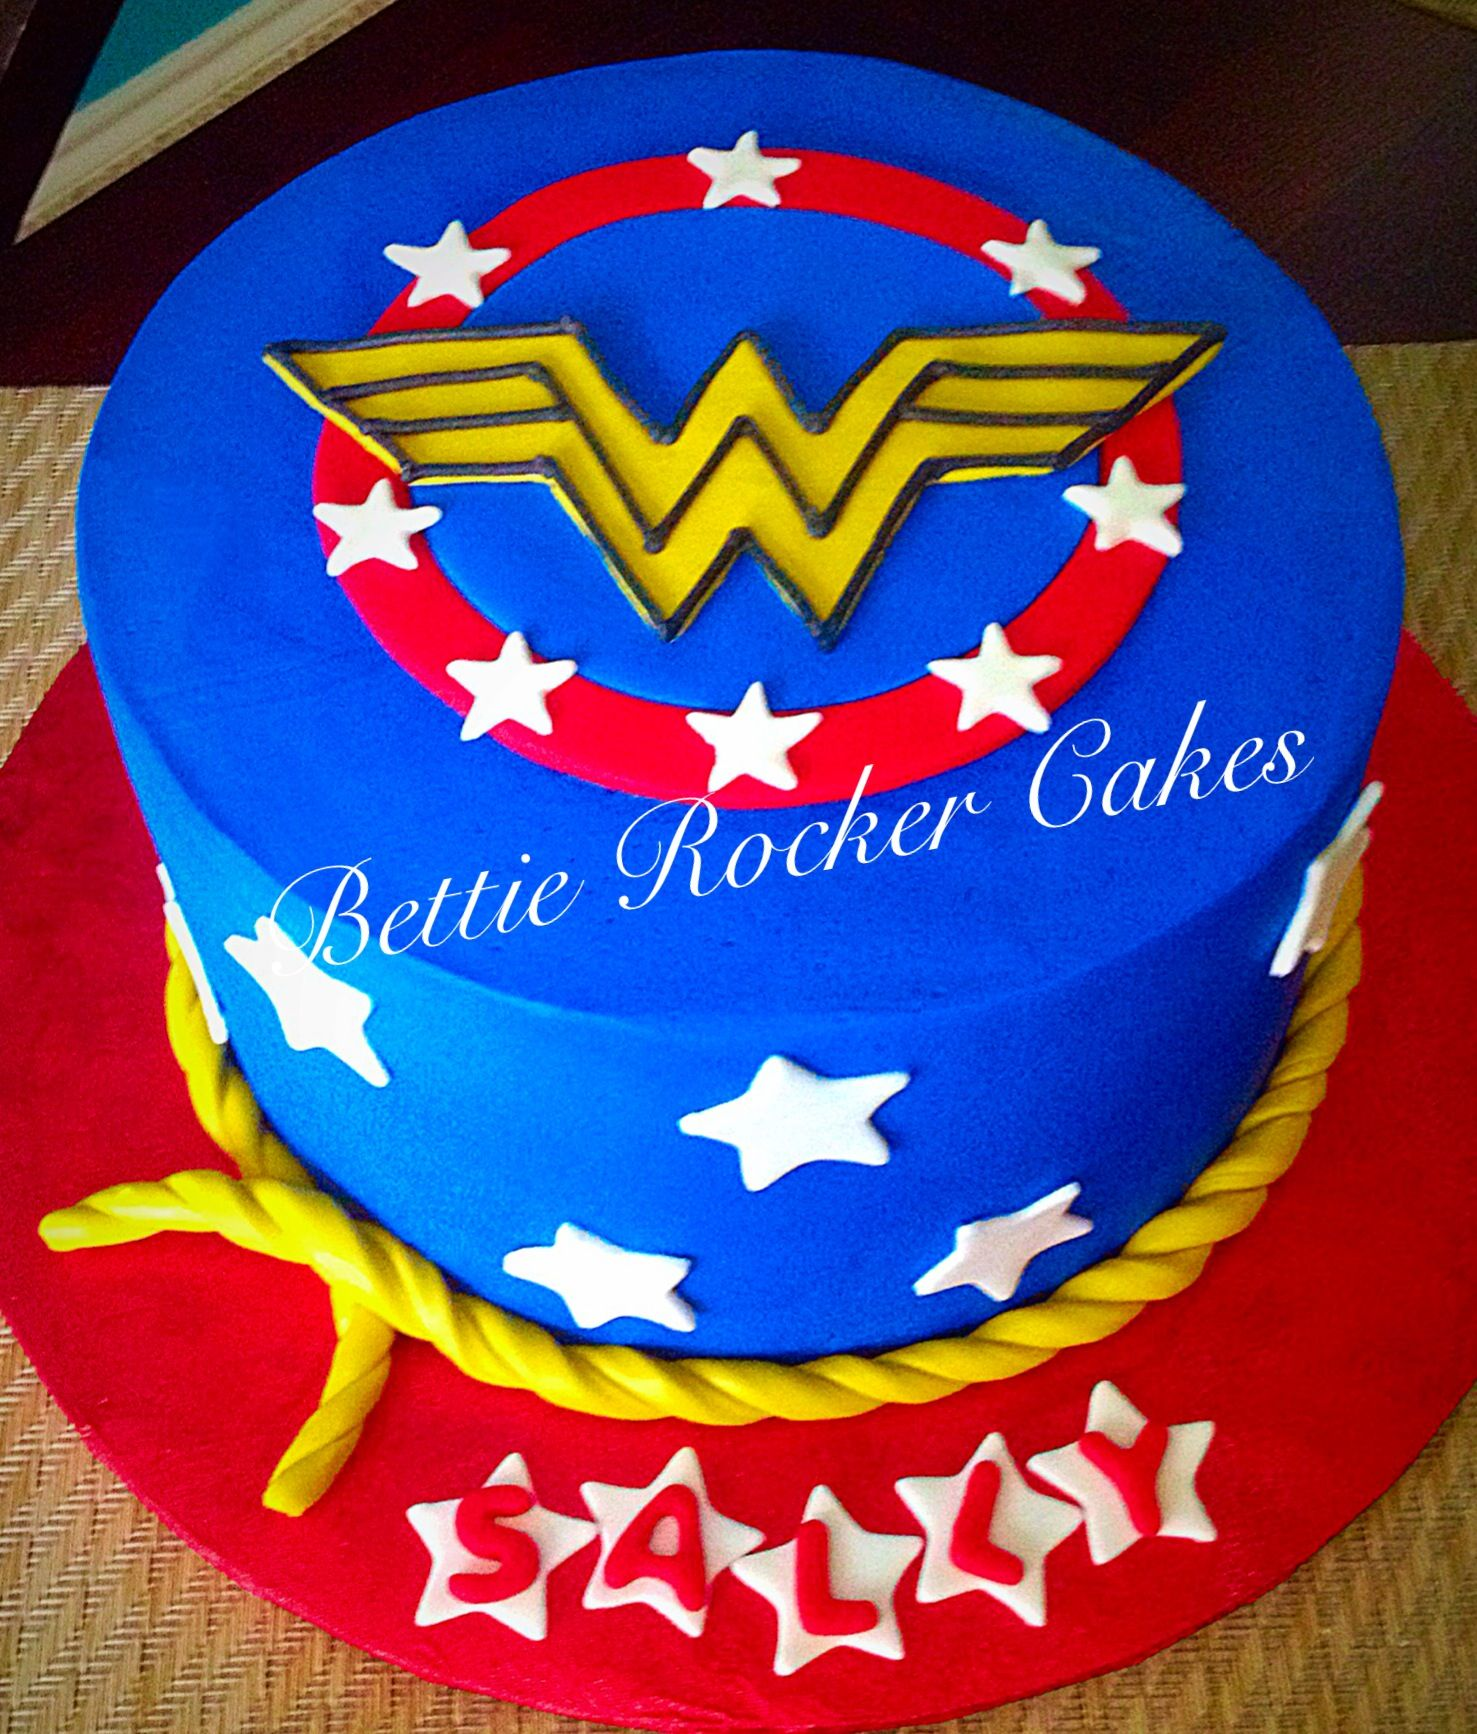 Swell Wonder Woman Birthday Cake Bettierockercakes Blogspot Com San Funny Birthday Cards Online Elaedamsfinfo